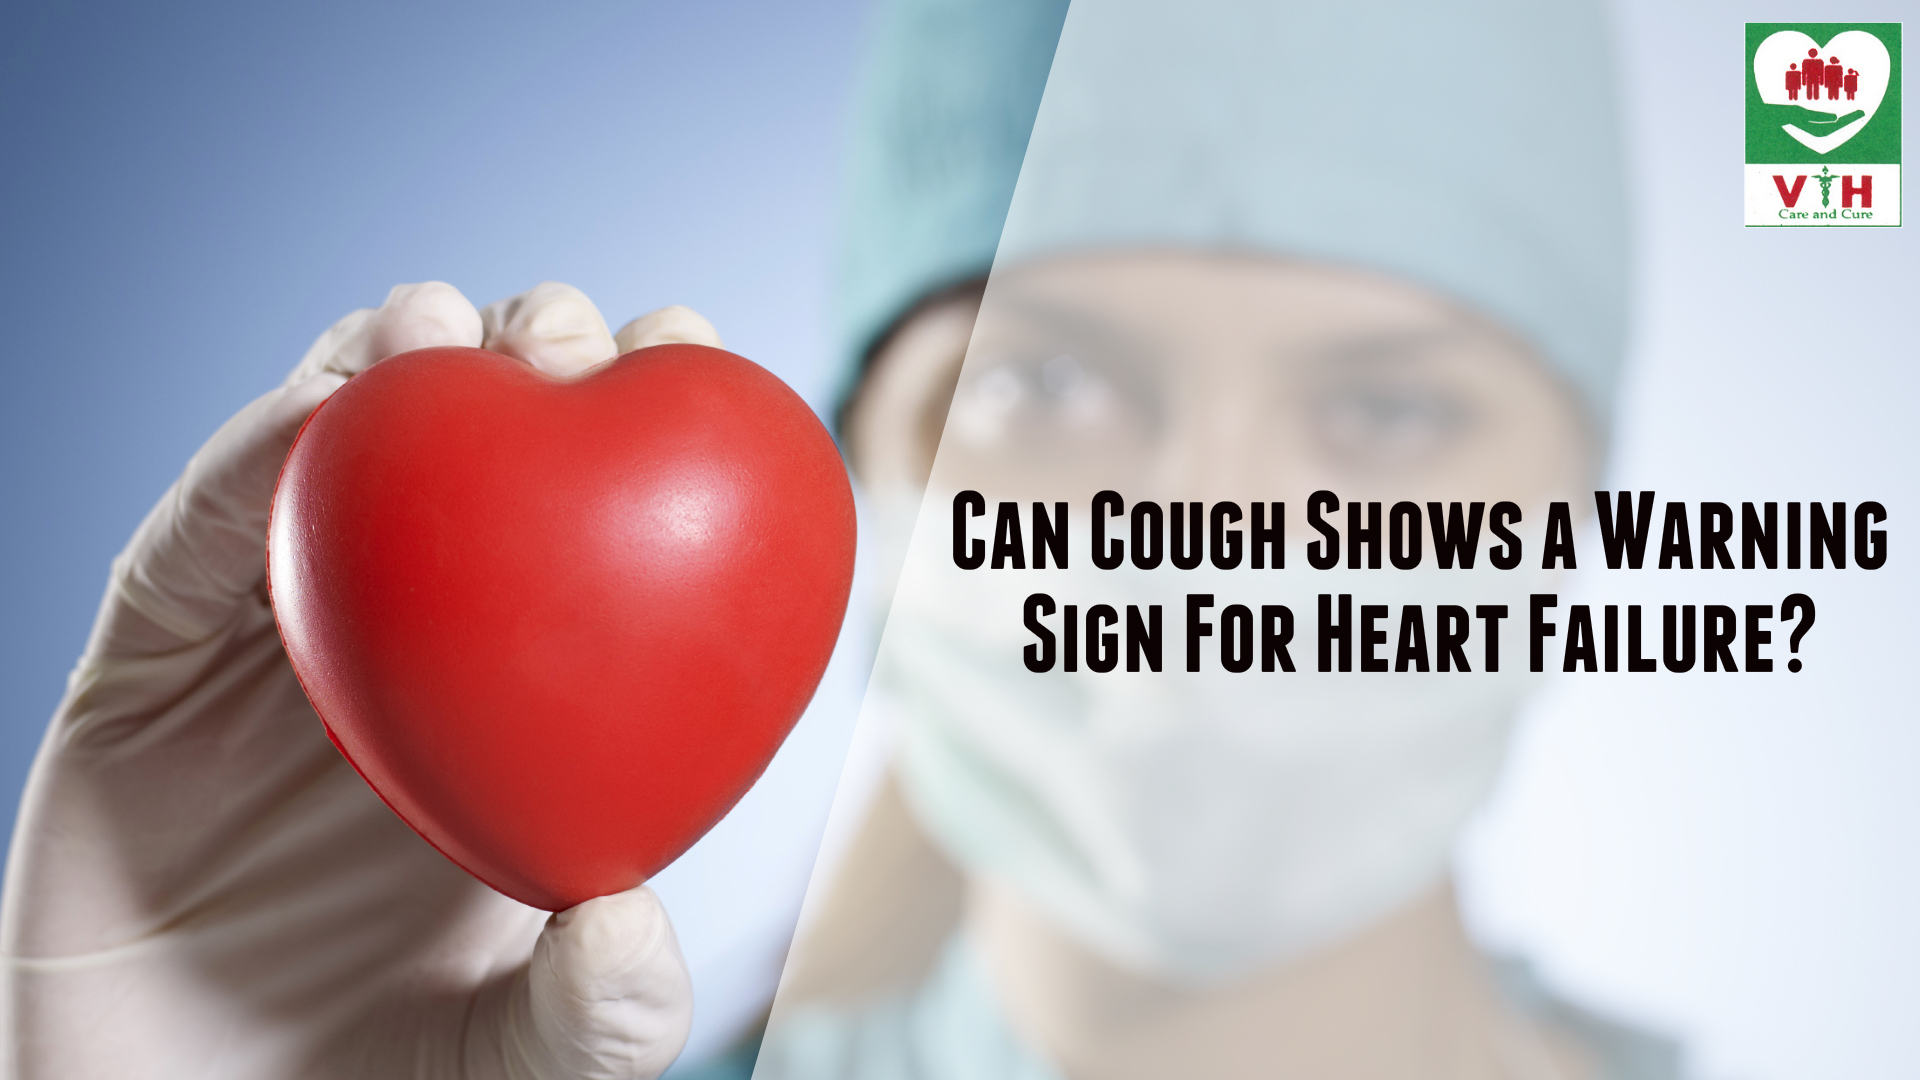 Can Cough Shows Warning Sign For Heart Failure